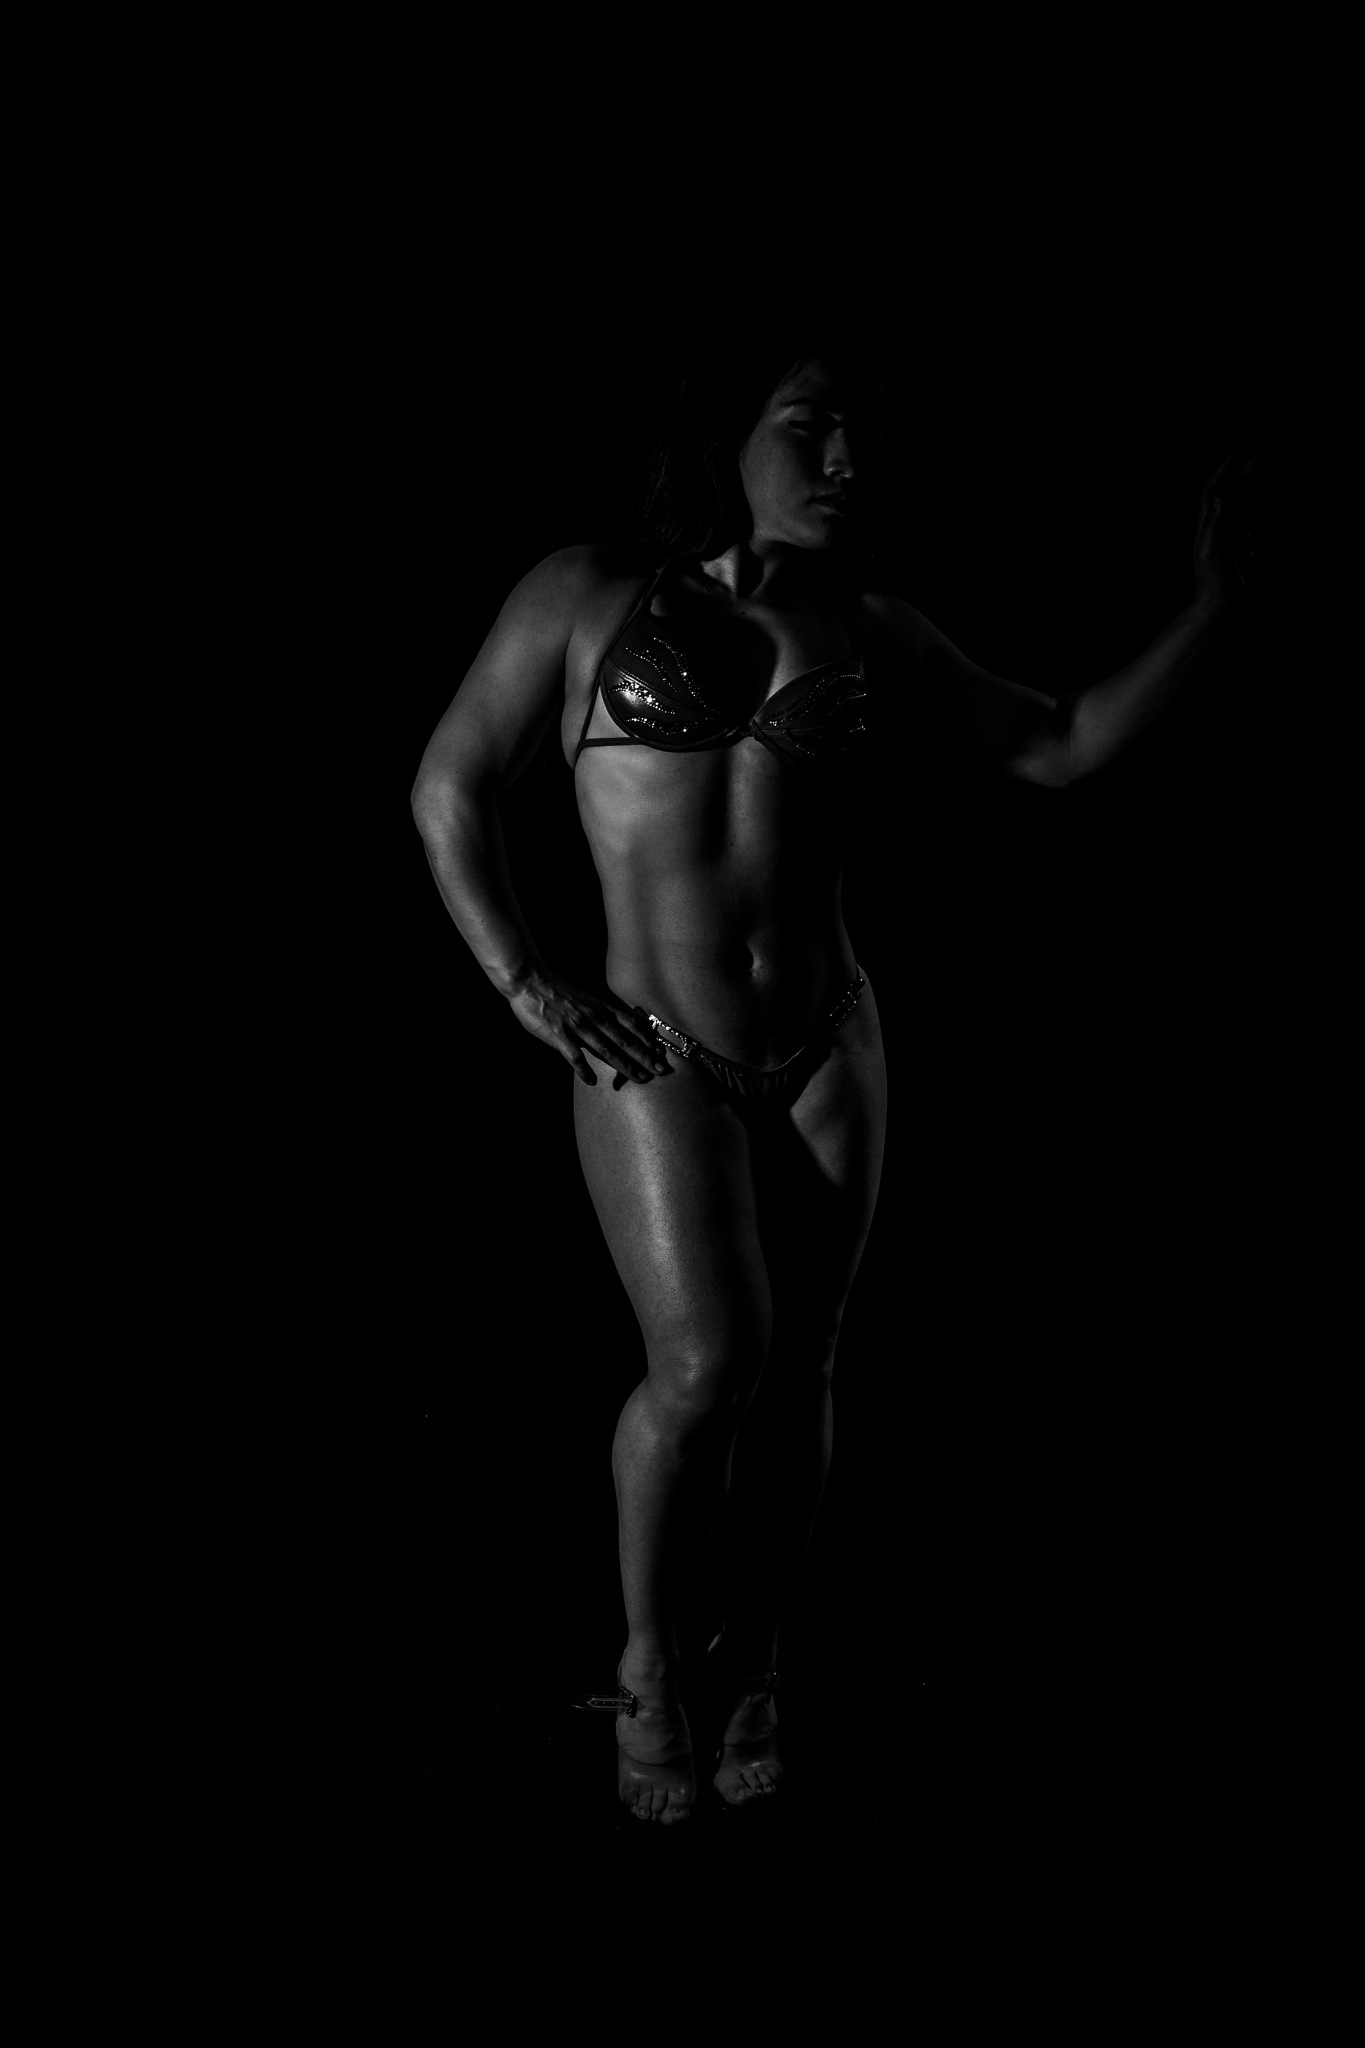 Fitness in B&W by Aris M Le